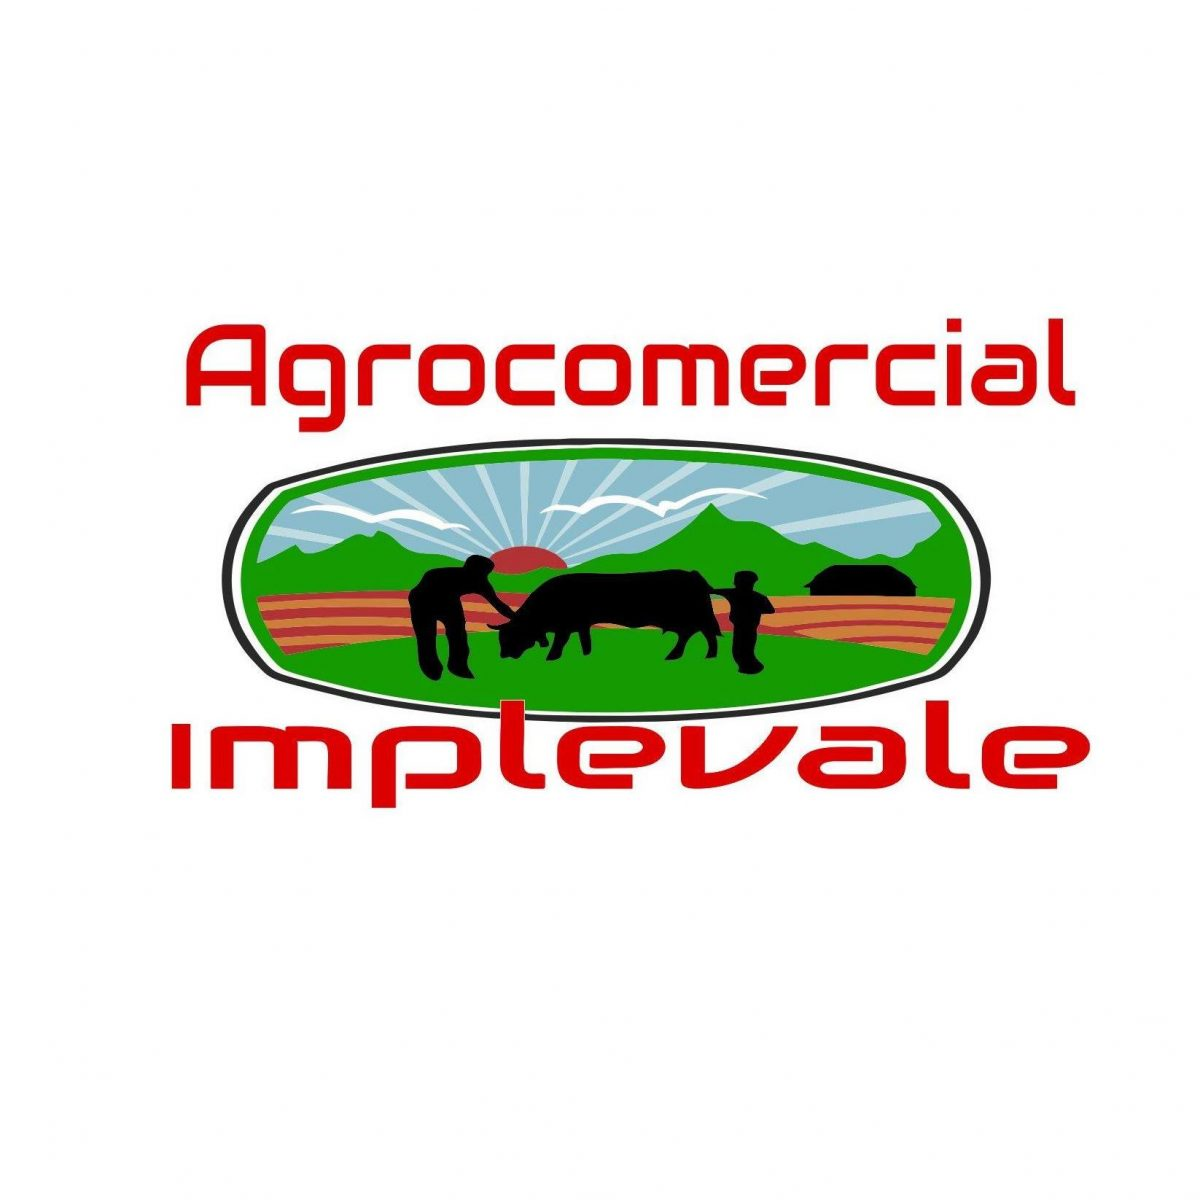 AGROCOMERCIAL IMPLEVALE